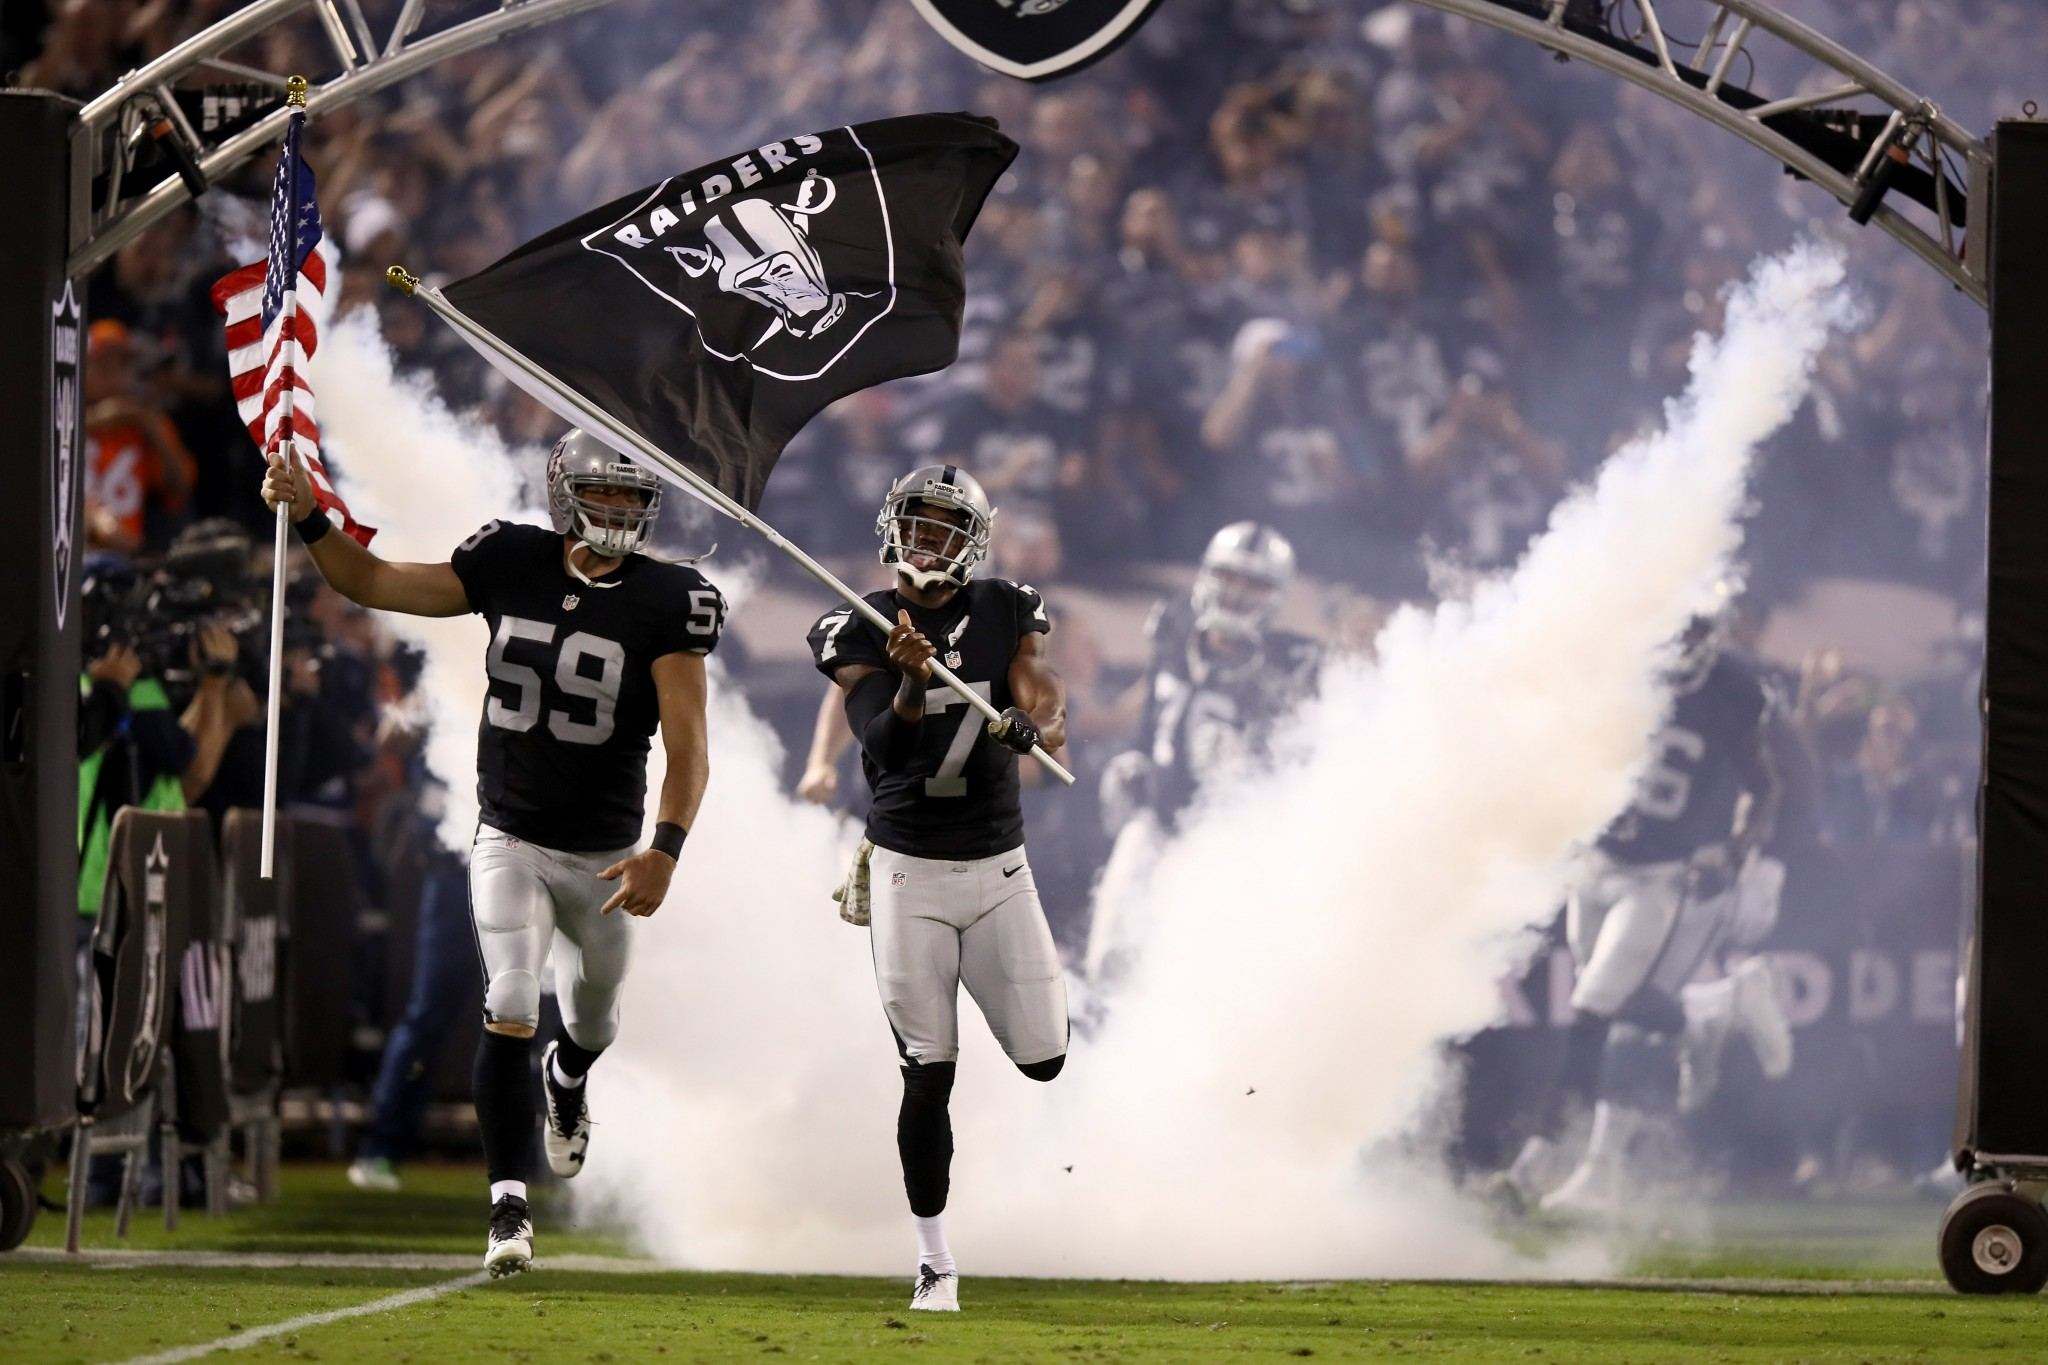 Watch Raiders punter pick up penalty flag, do dance with it, ge…